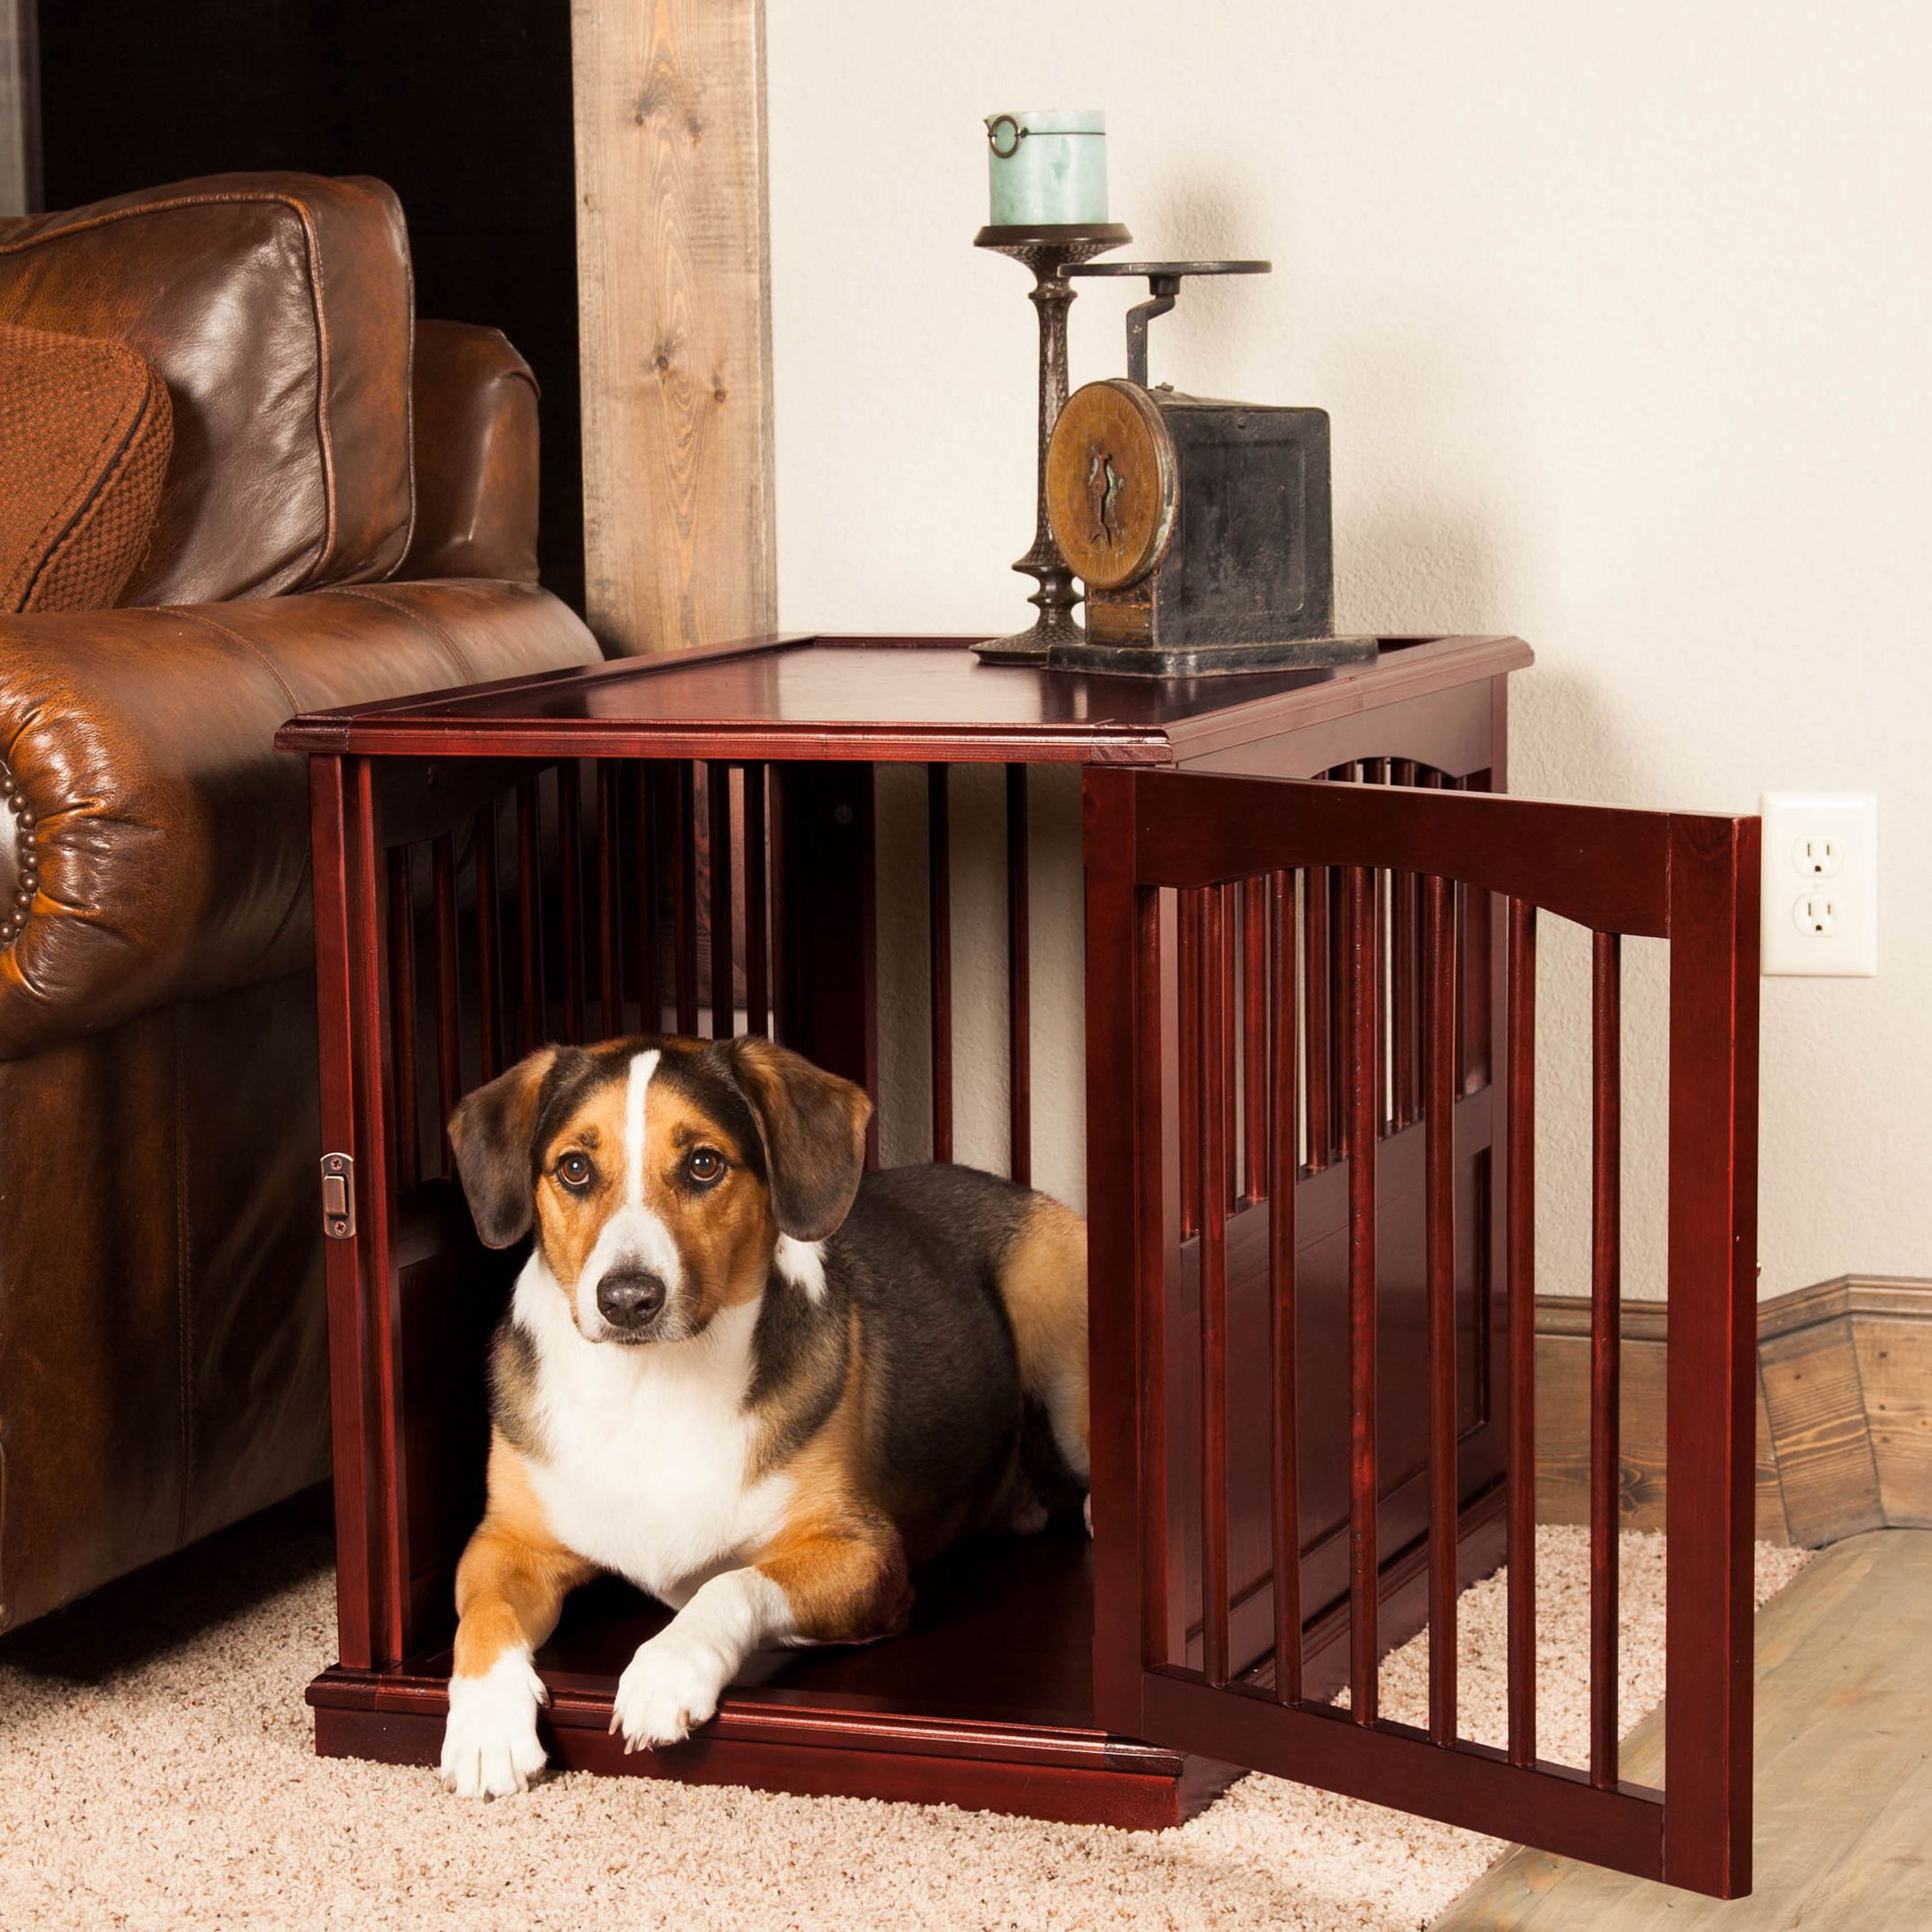 Overstock Com Online Shopping Bedding Furniture Electronics Jewelry Clothing More Dog Kennel End Table Dog Crate Wooden Dog Crate